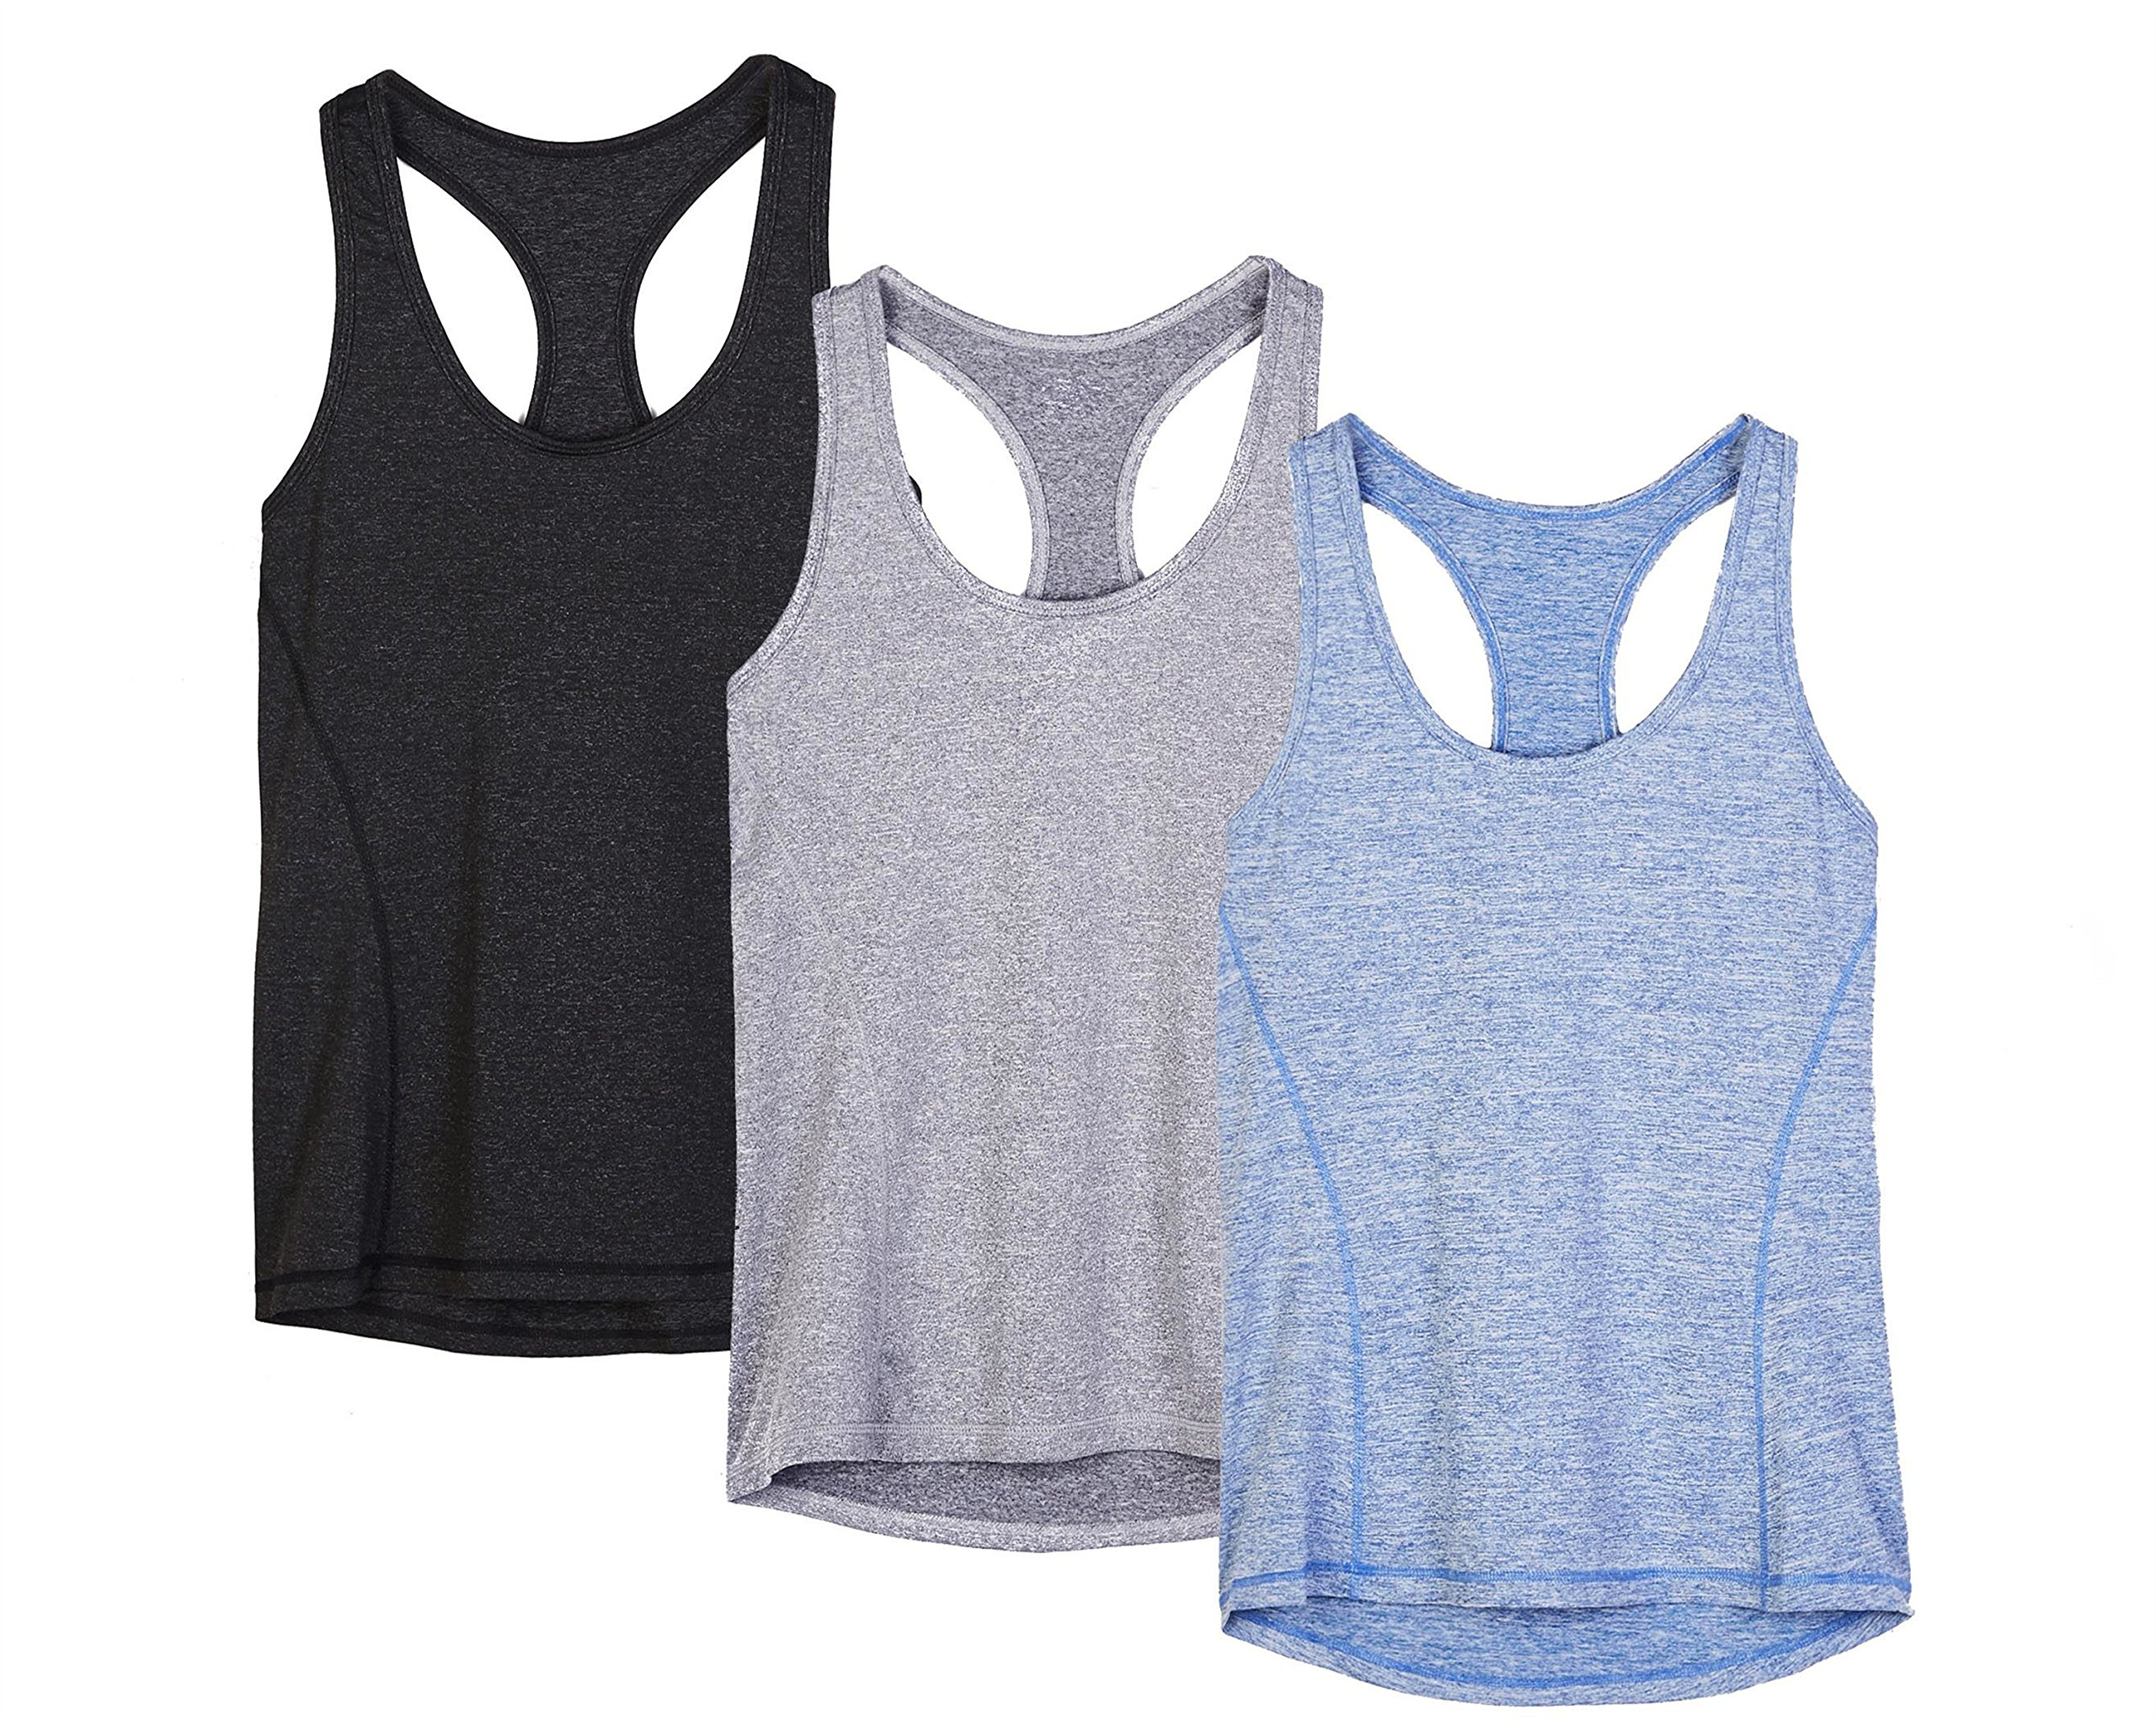 icyzone Activewear Running Workouts Clothes Yoga Racerback Tank Tops Women(Pack of 3) (M, Black/Granite/Blue)